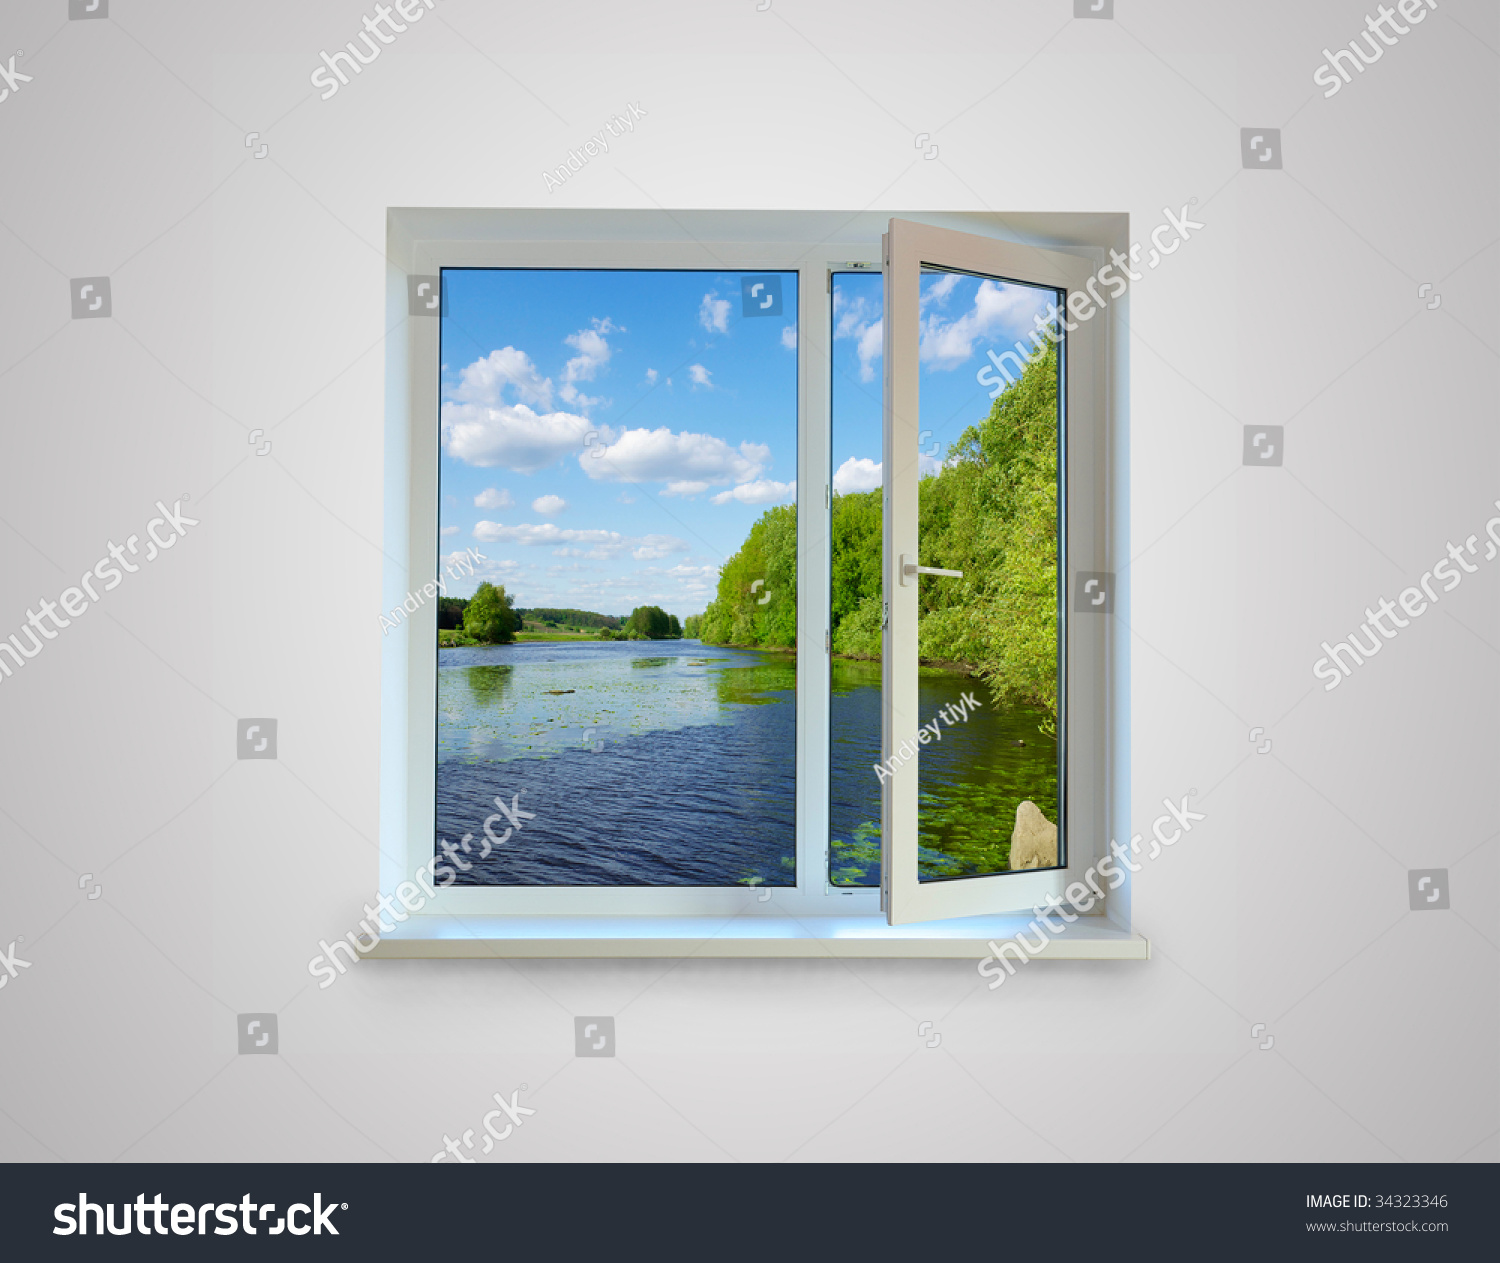 Closed Window Frame : New closed plastic glass window frame stock photo